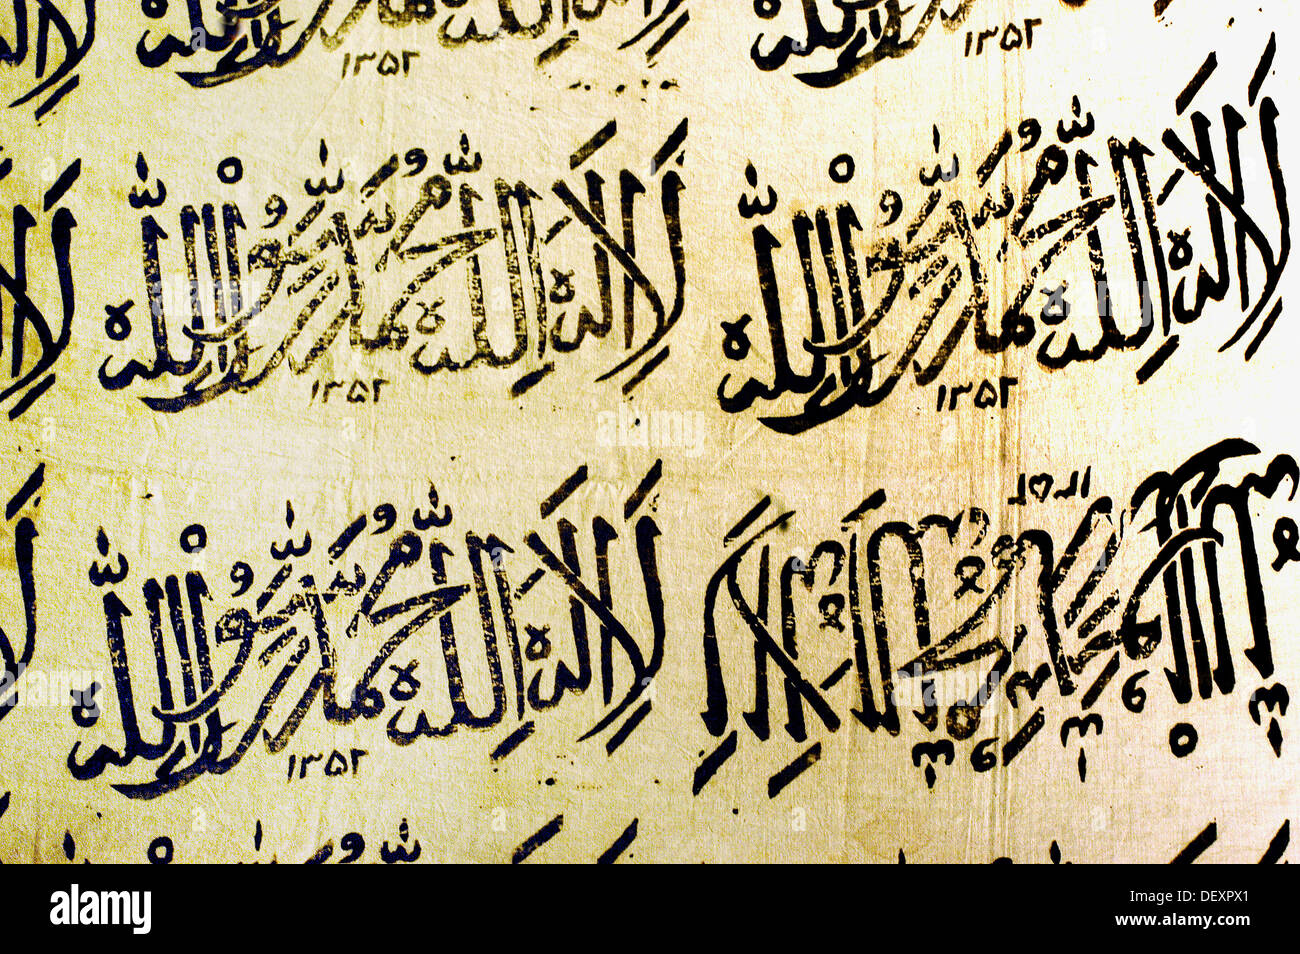 Detail of Islamic textile dating from 19th century preserved at the Cultural gallery of Muzium Negara (National Museum). - Stock Image